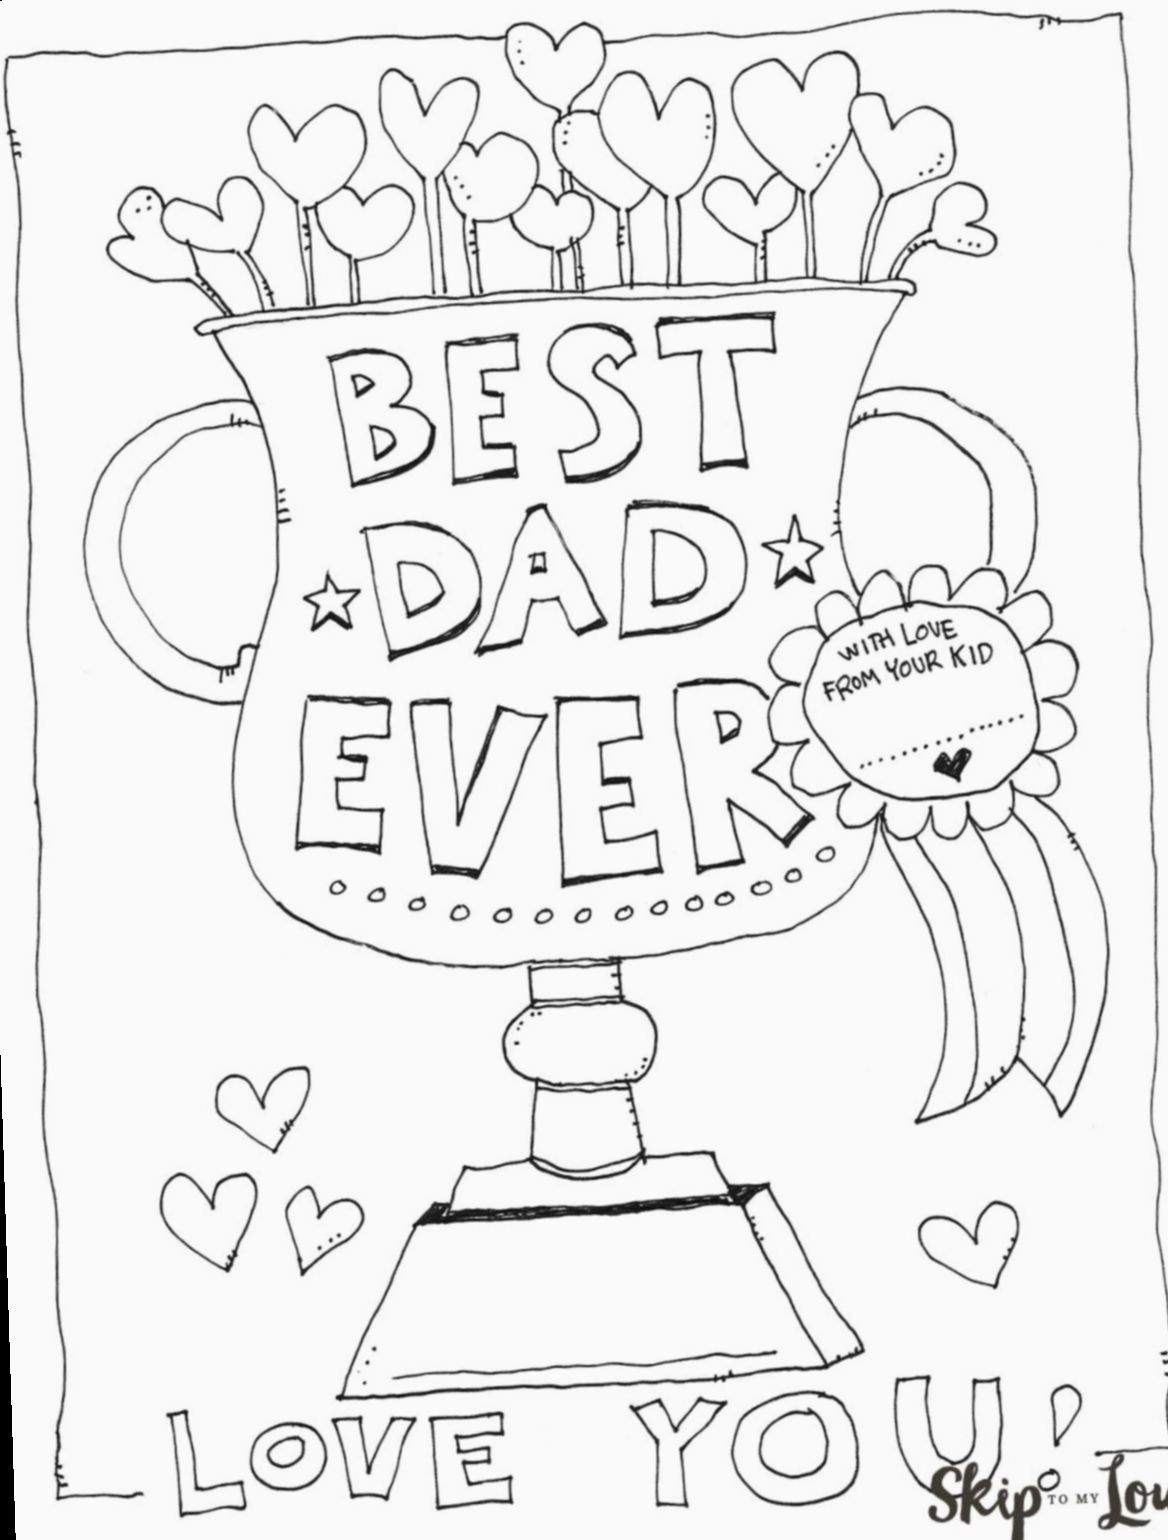 Cute Crafts For Your Boyfriend Free Printable Mundorosa Maedemenina Princess Fathers Day Coloring Page Father S Day Printable Birthday Coloring Pages